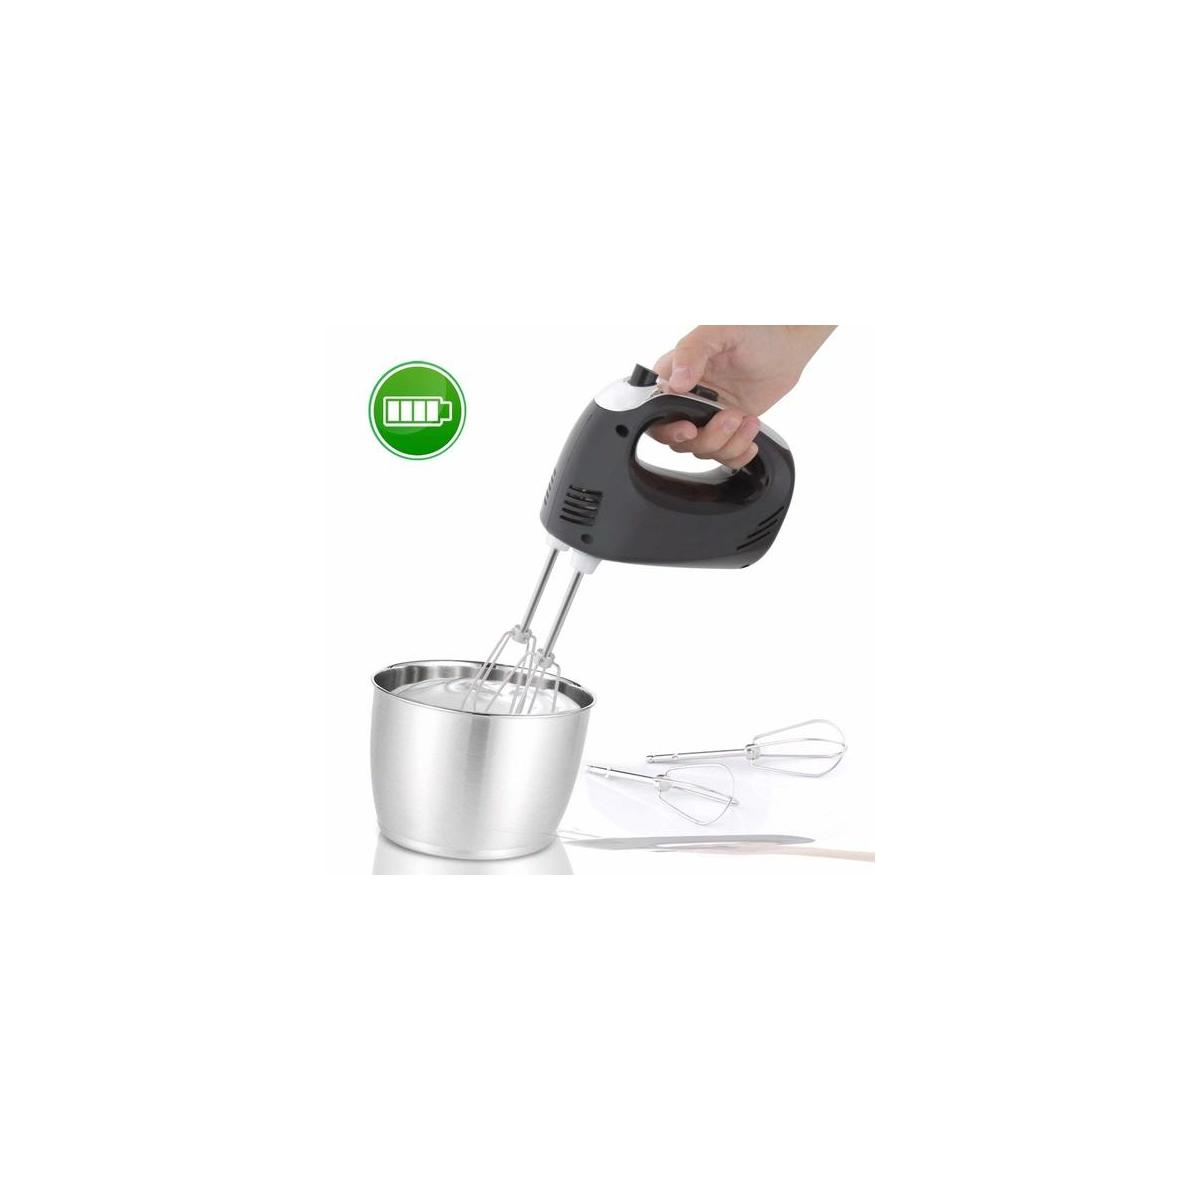 Electric Hand Mixer - Portable Egg Beater Small Whisk Cake Mixer, Rechargeable Batteries, 3 Speed Settings, Stainless Steel Beasters NutriChef PKHNDMX32